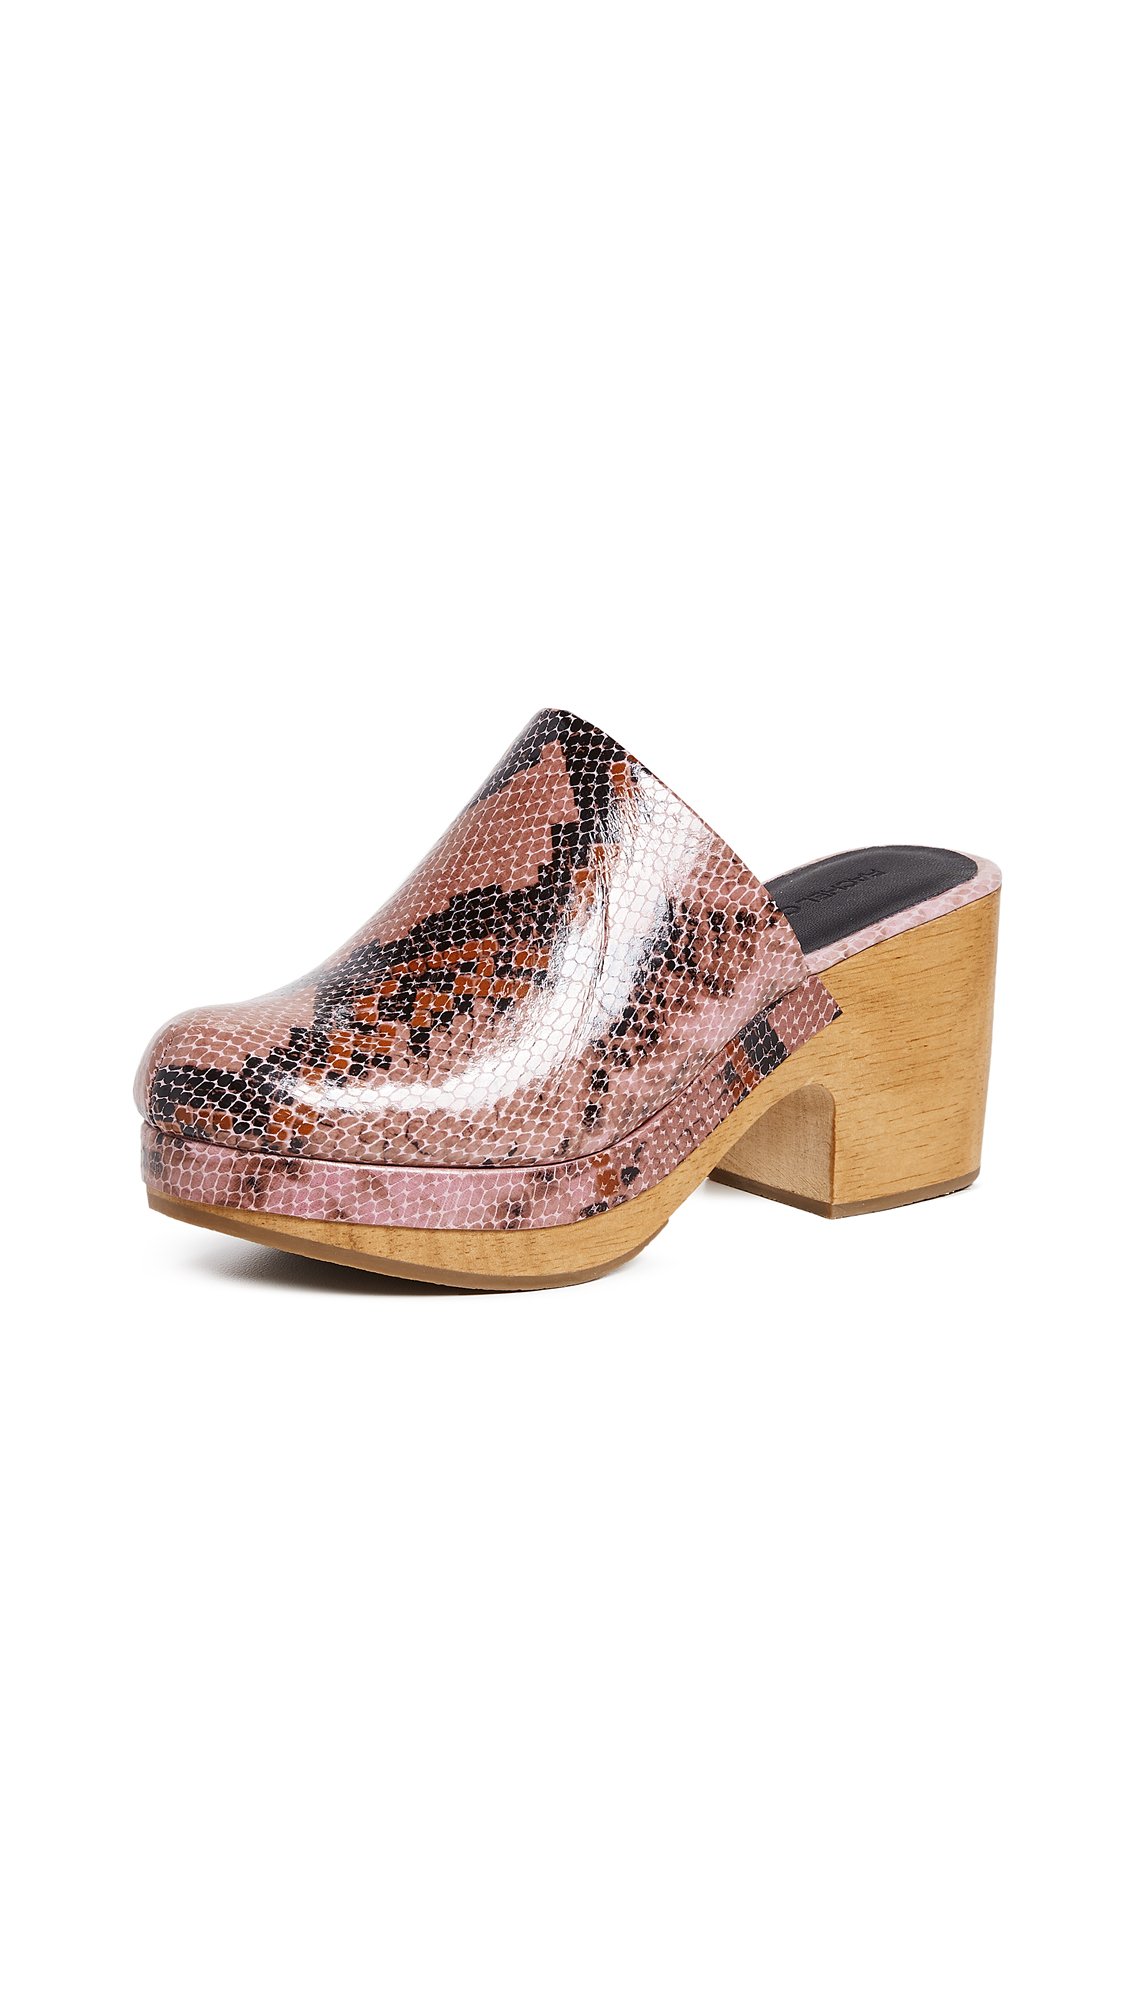 Rachel Comey Bose Low Clogs - Pink Snake